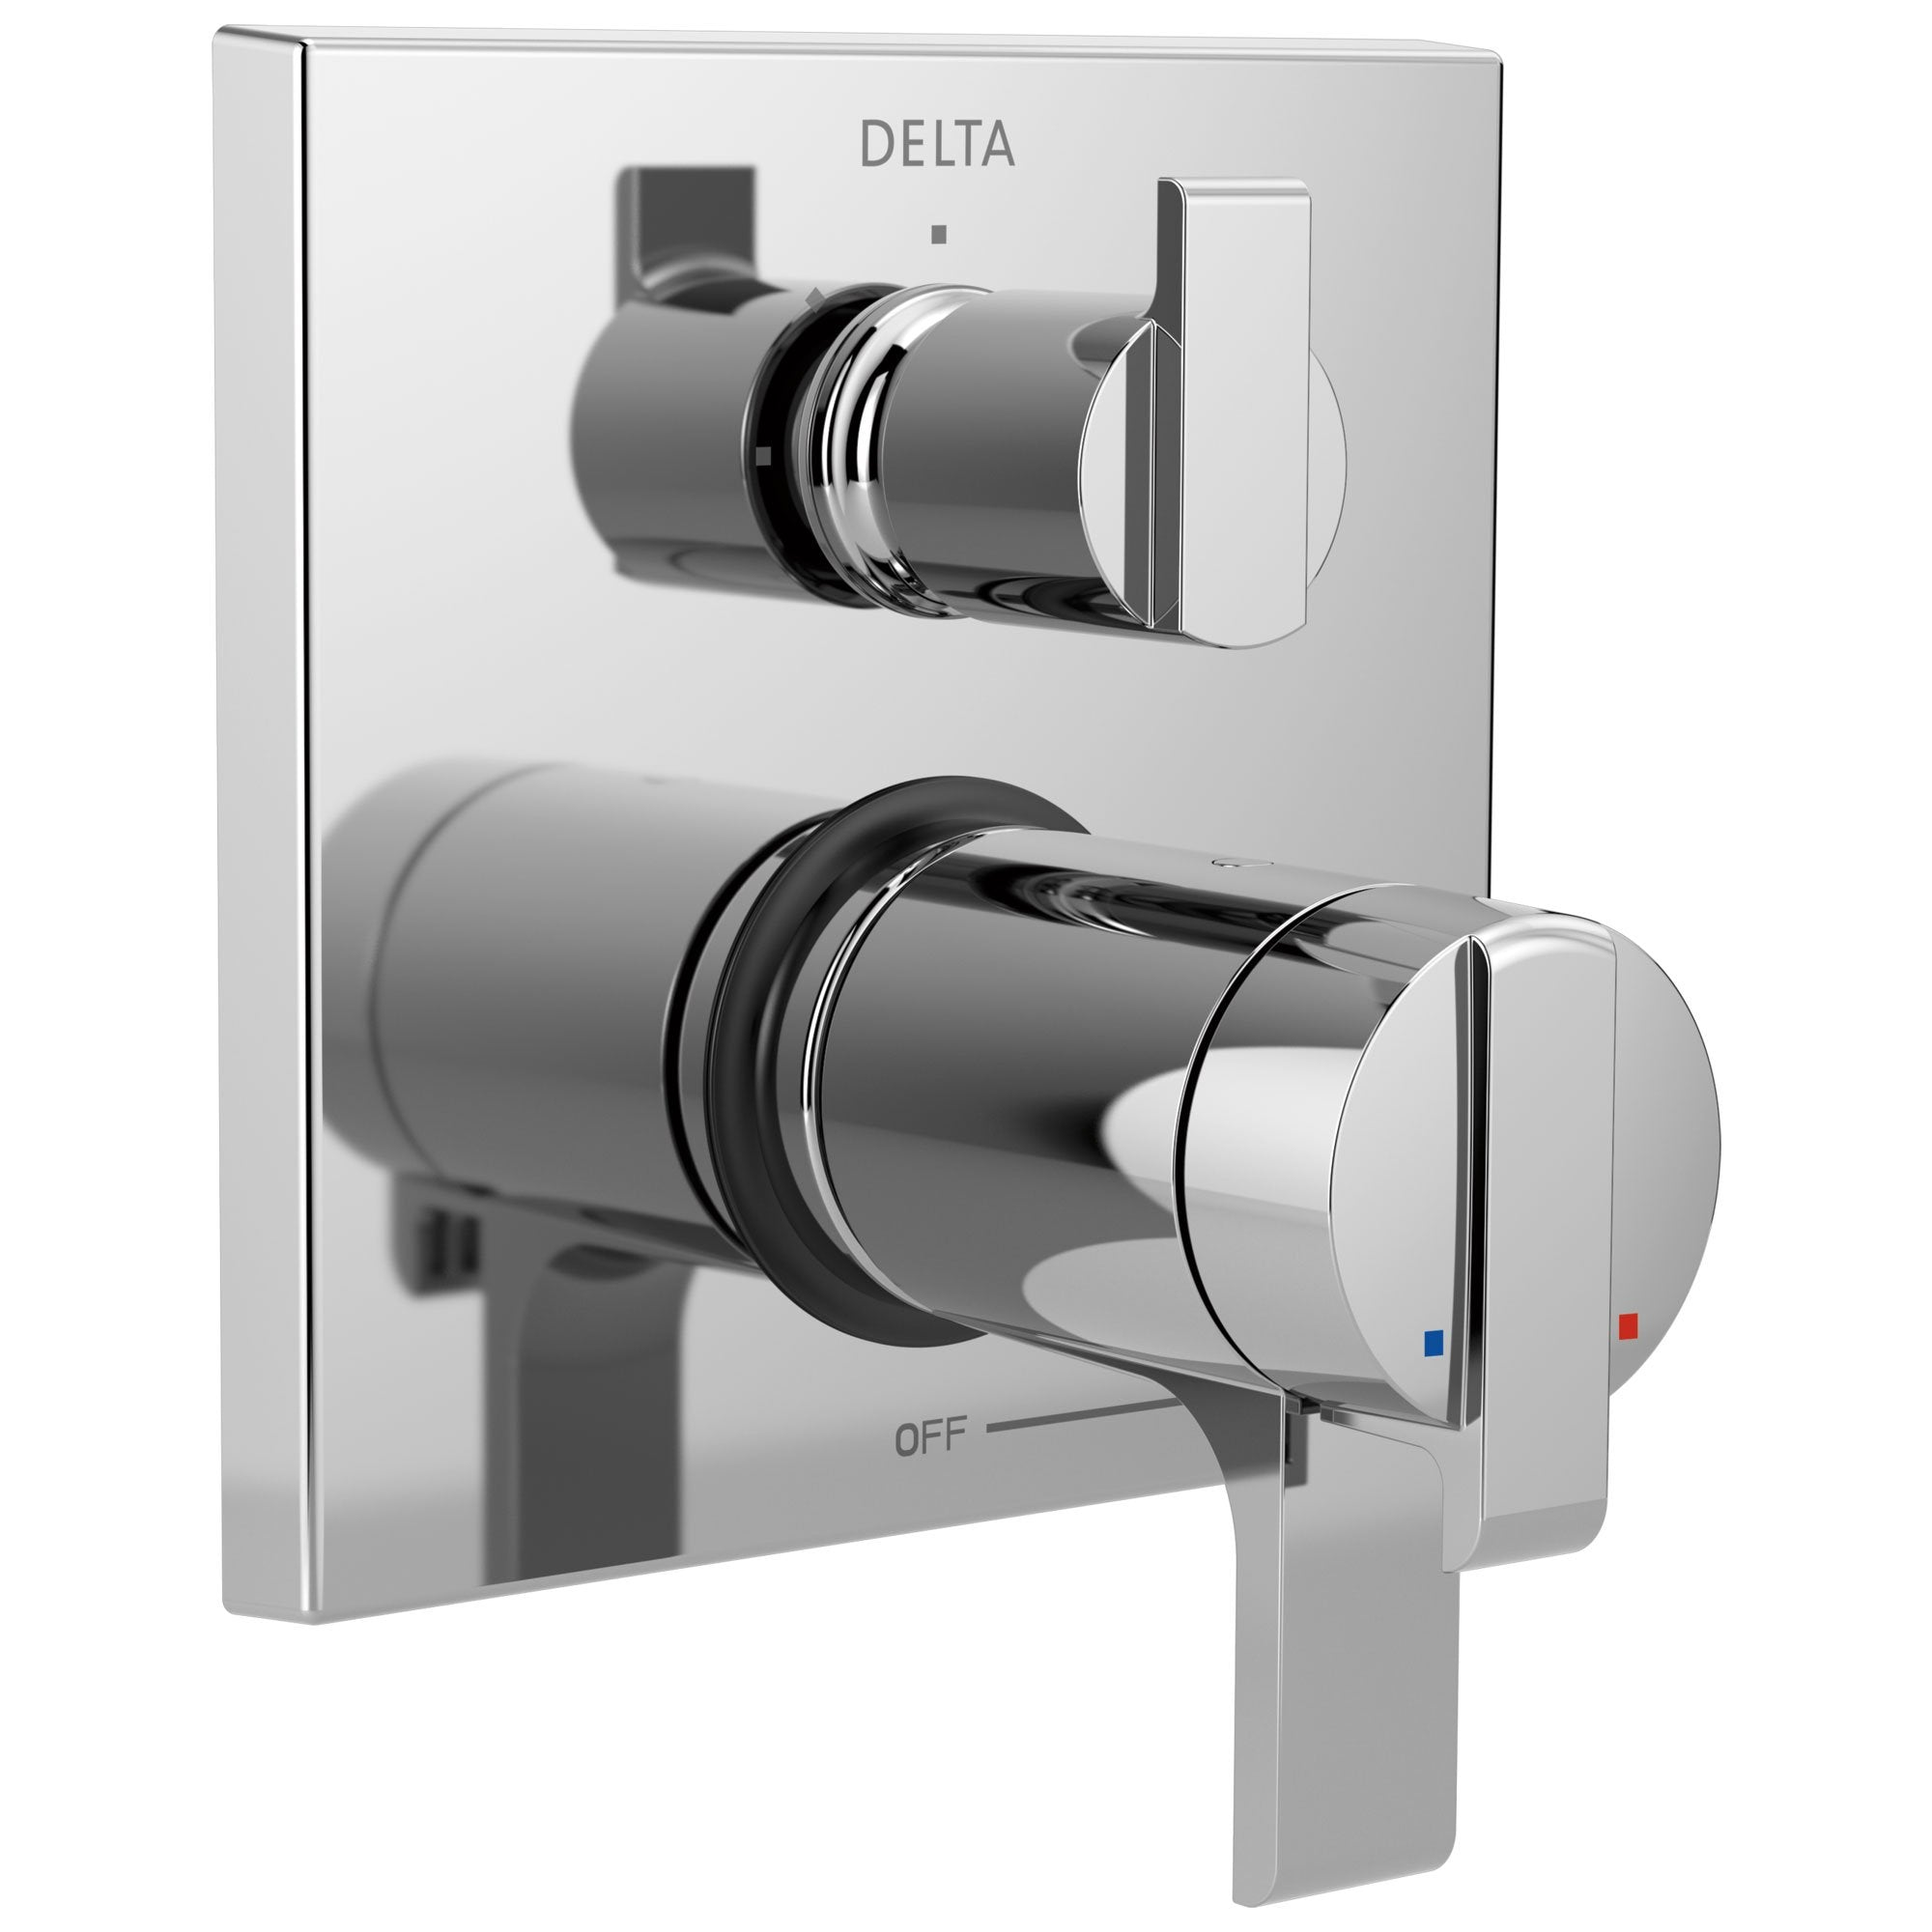 Delta Ara Chrome Modern Thermostatic Shower Faucet Control Handle with 3-Setting Integrated Diverter Includes Trim Kit and Rough-in Valve with Stops D2135V